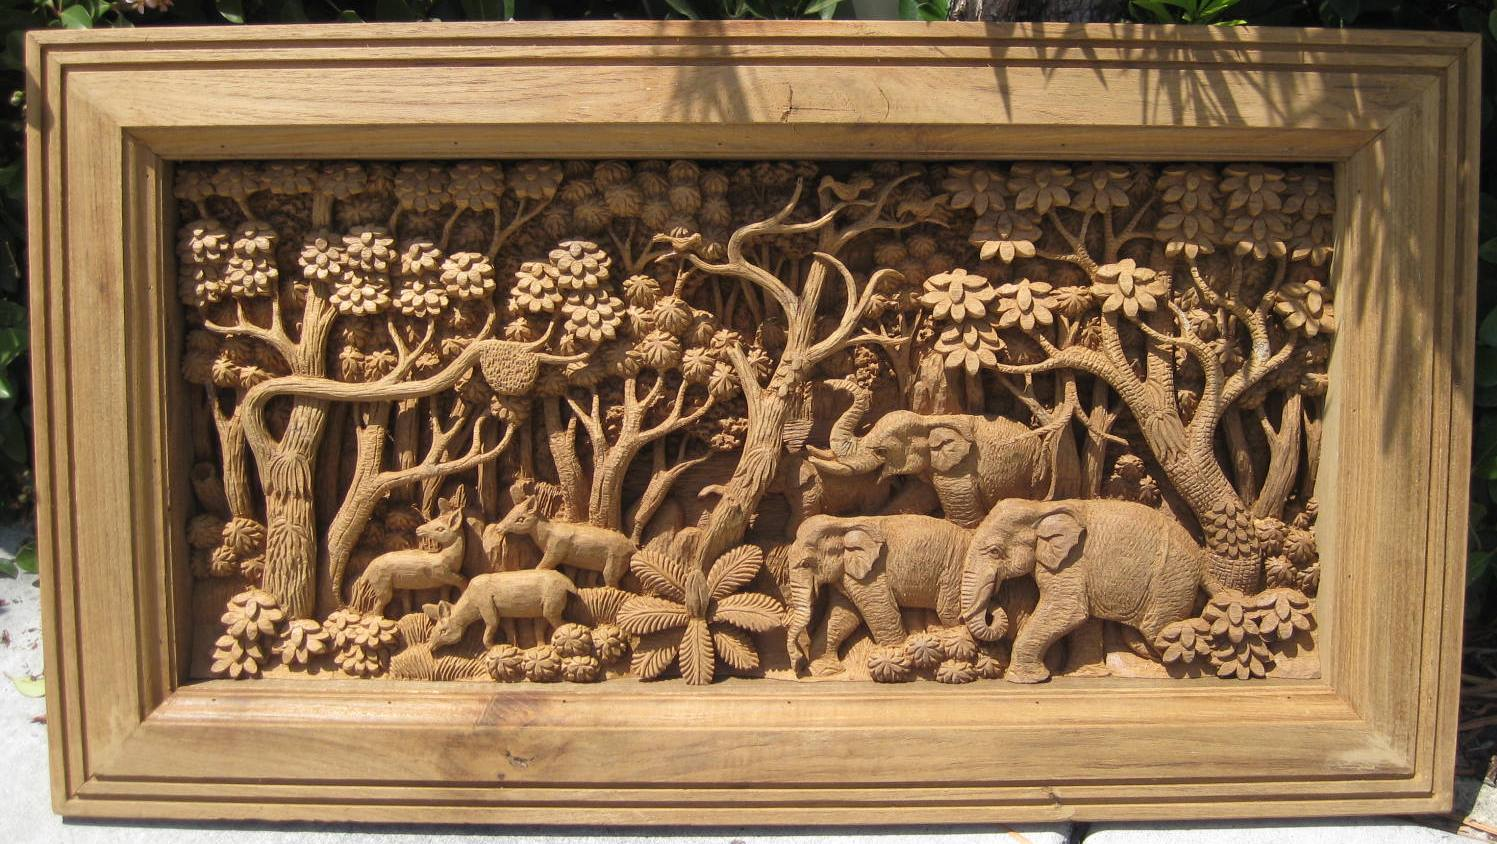 Teak panel wood panels carvings herds of